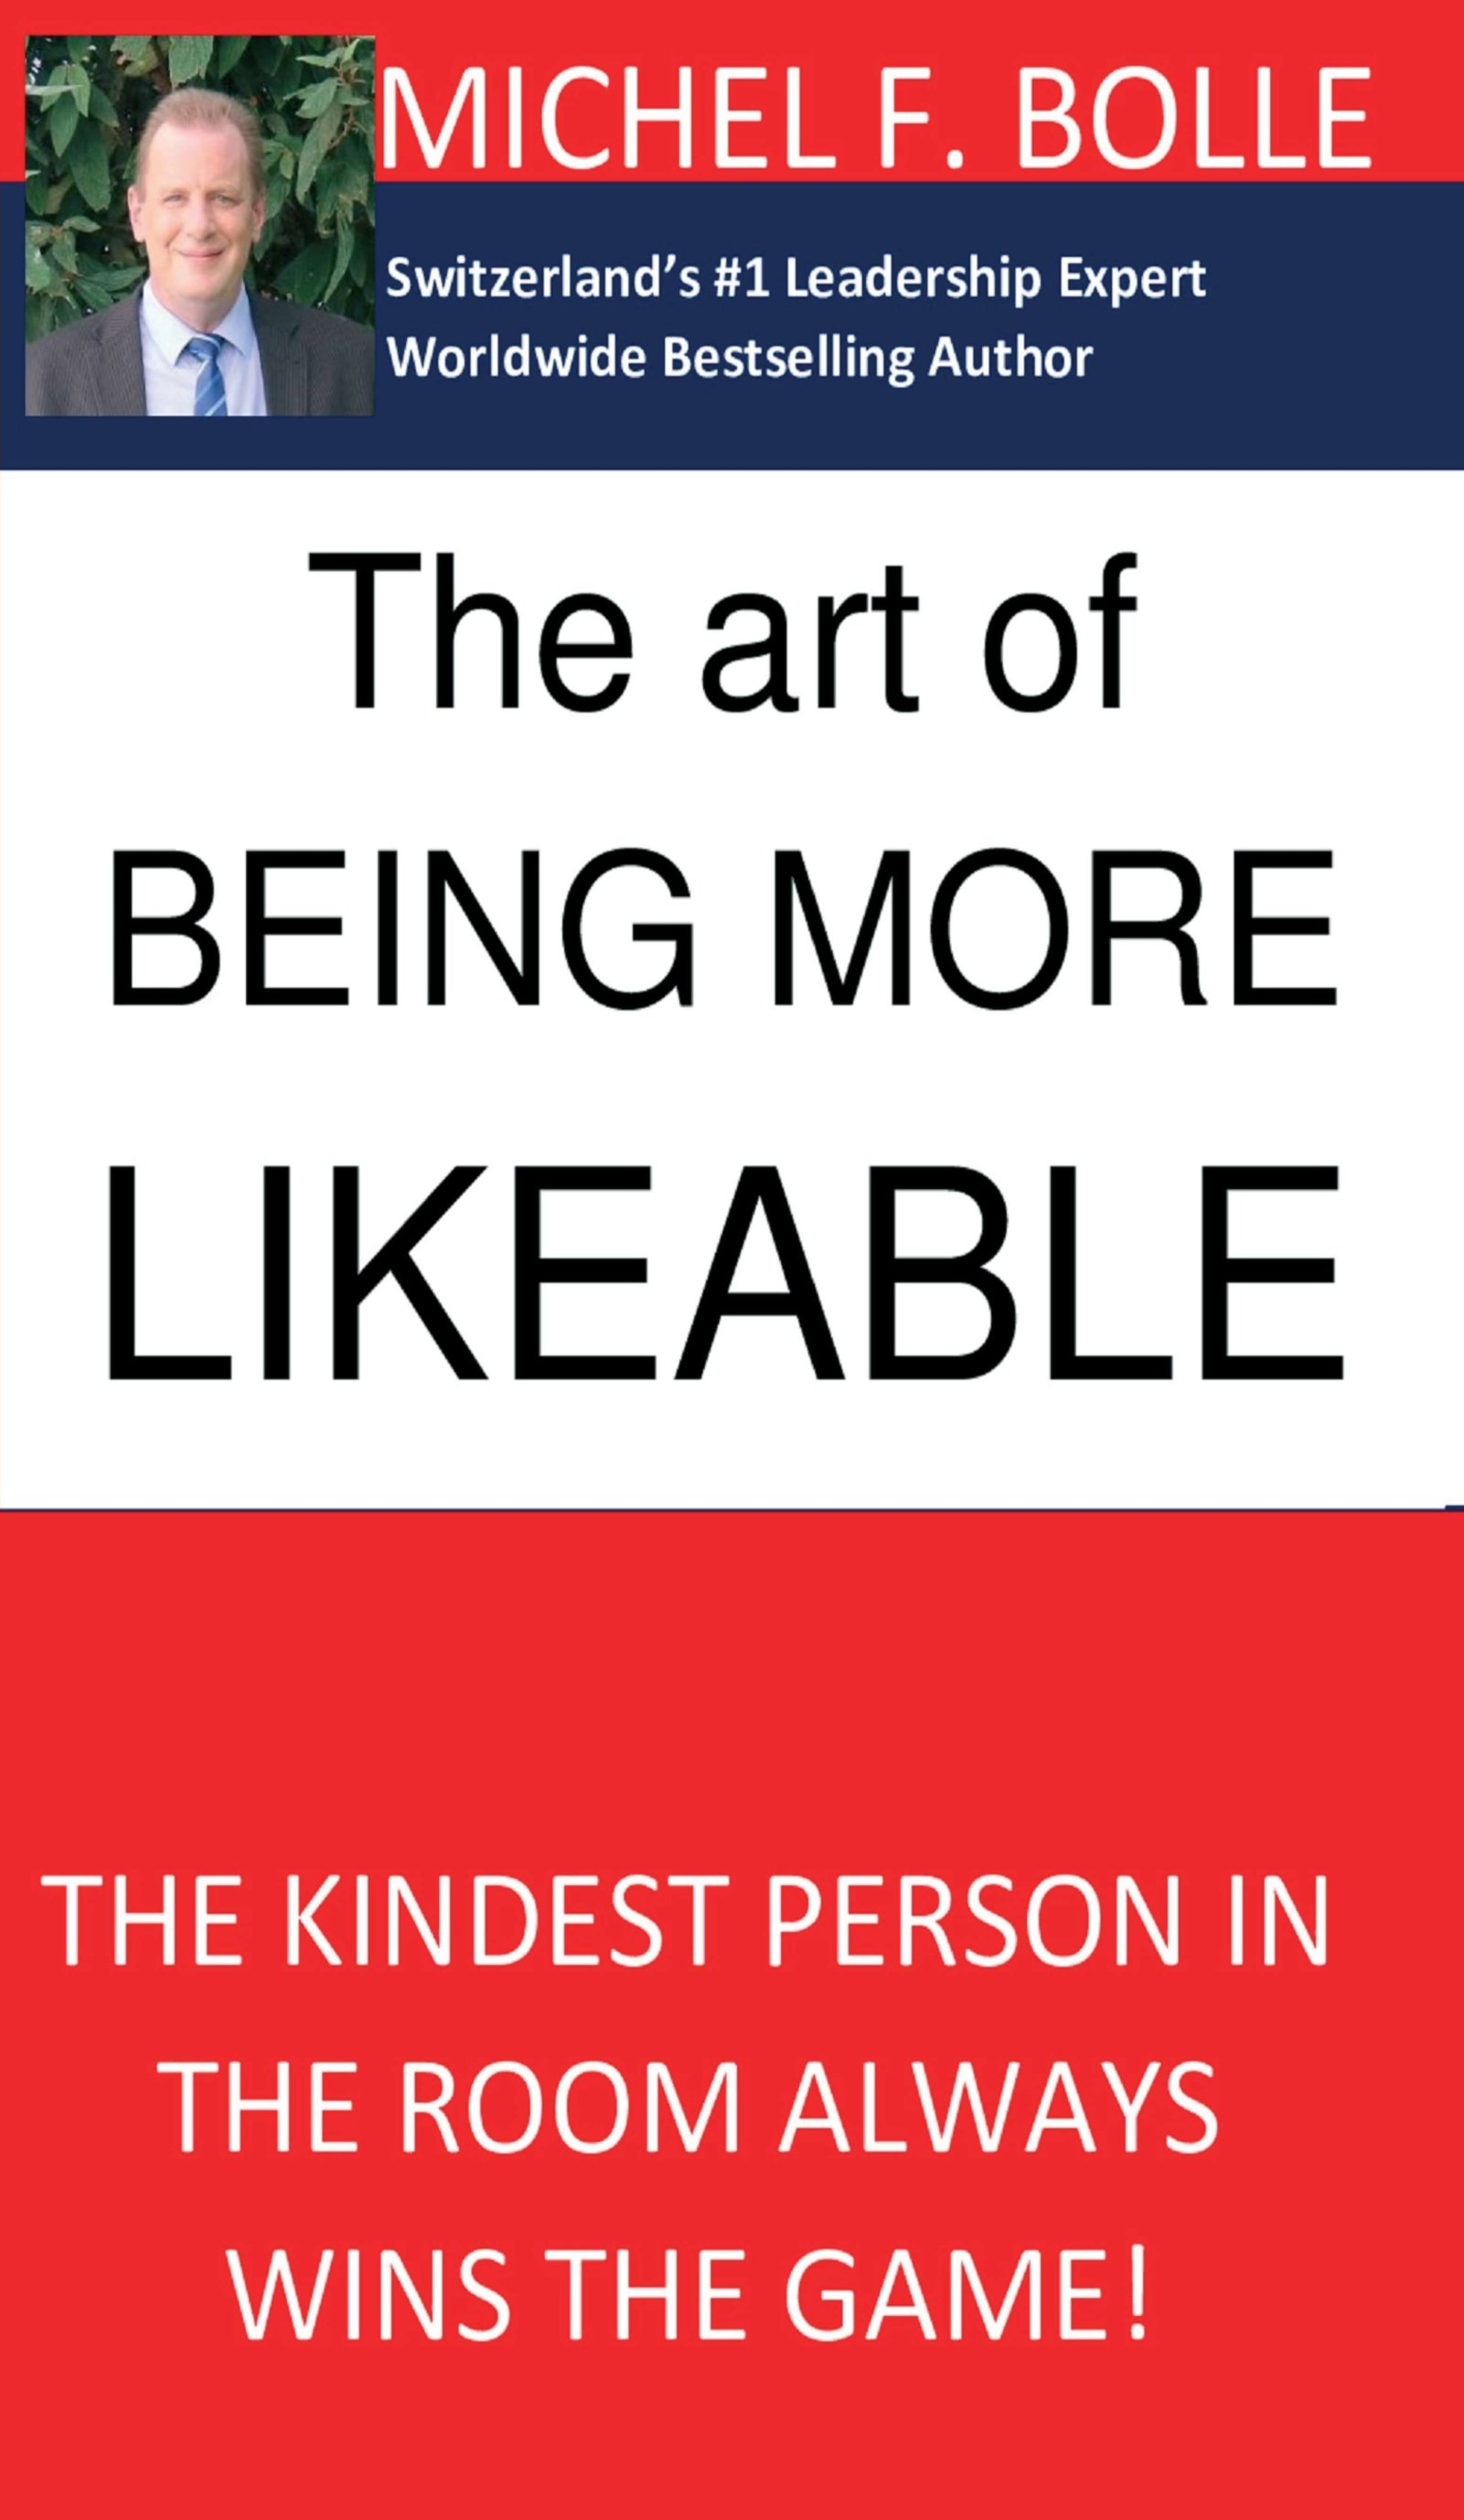 THE ART OF BEING MORE LIKEABLE - The newest book from Switzerland's #1 Sales & Leadership Expert